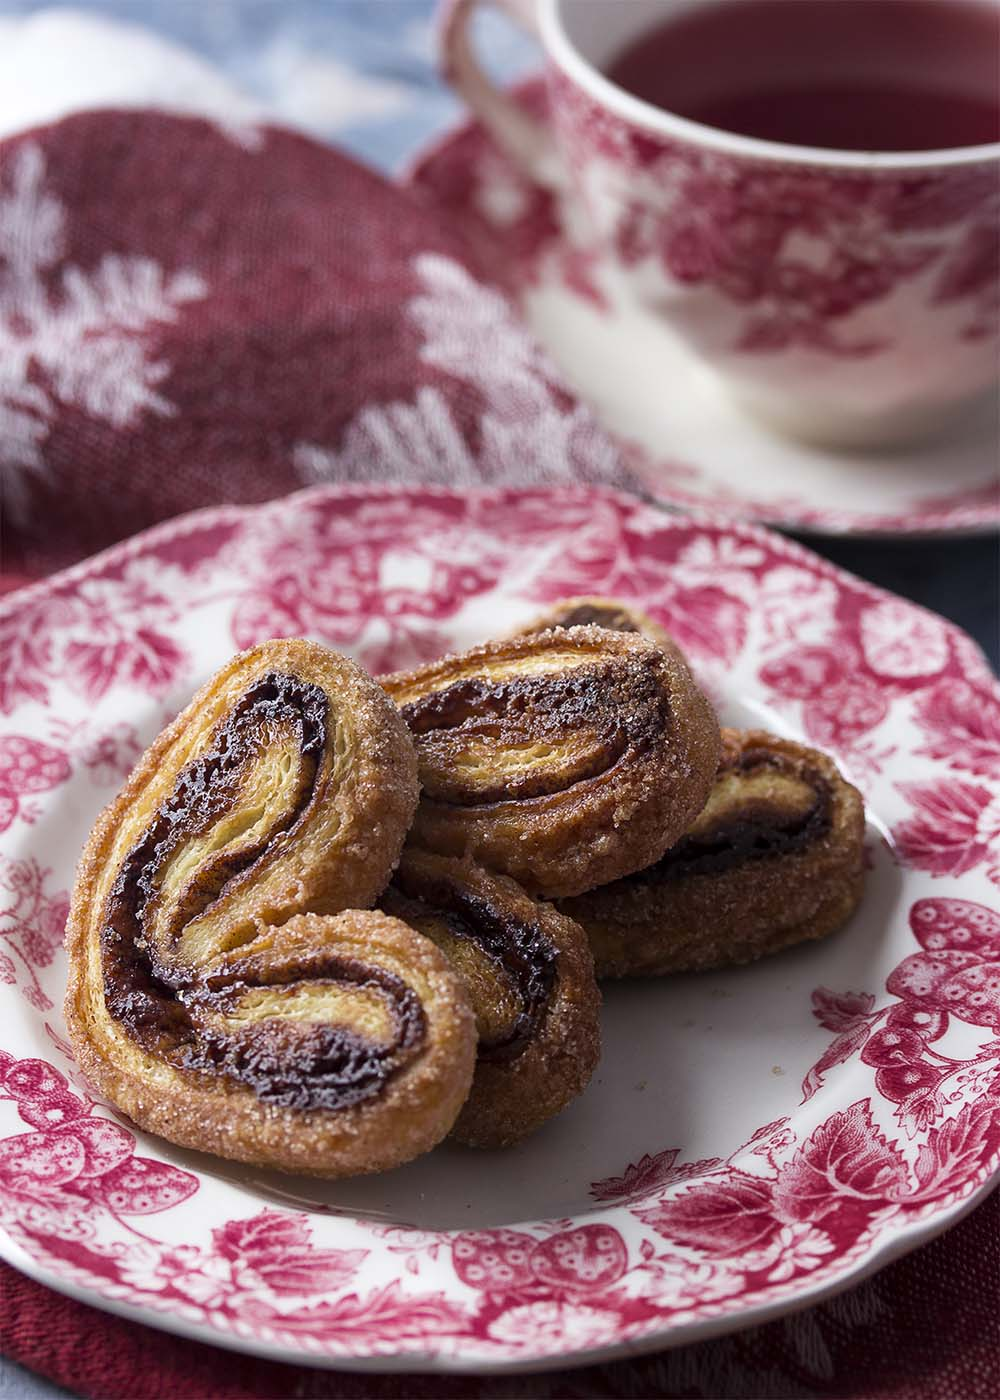 Cinnamon cocoa palmiers arranged on a plate with a cup of tea in the background.